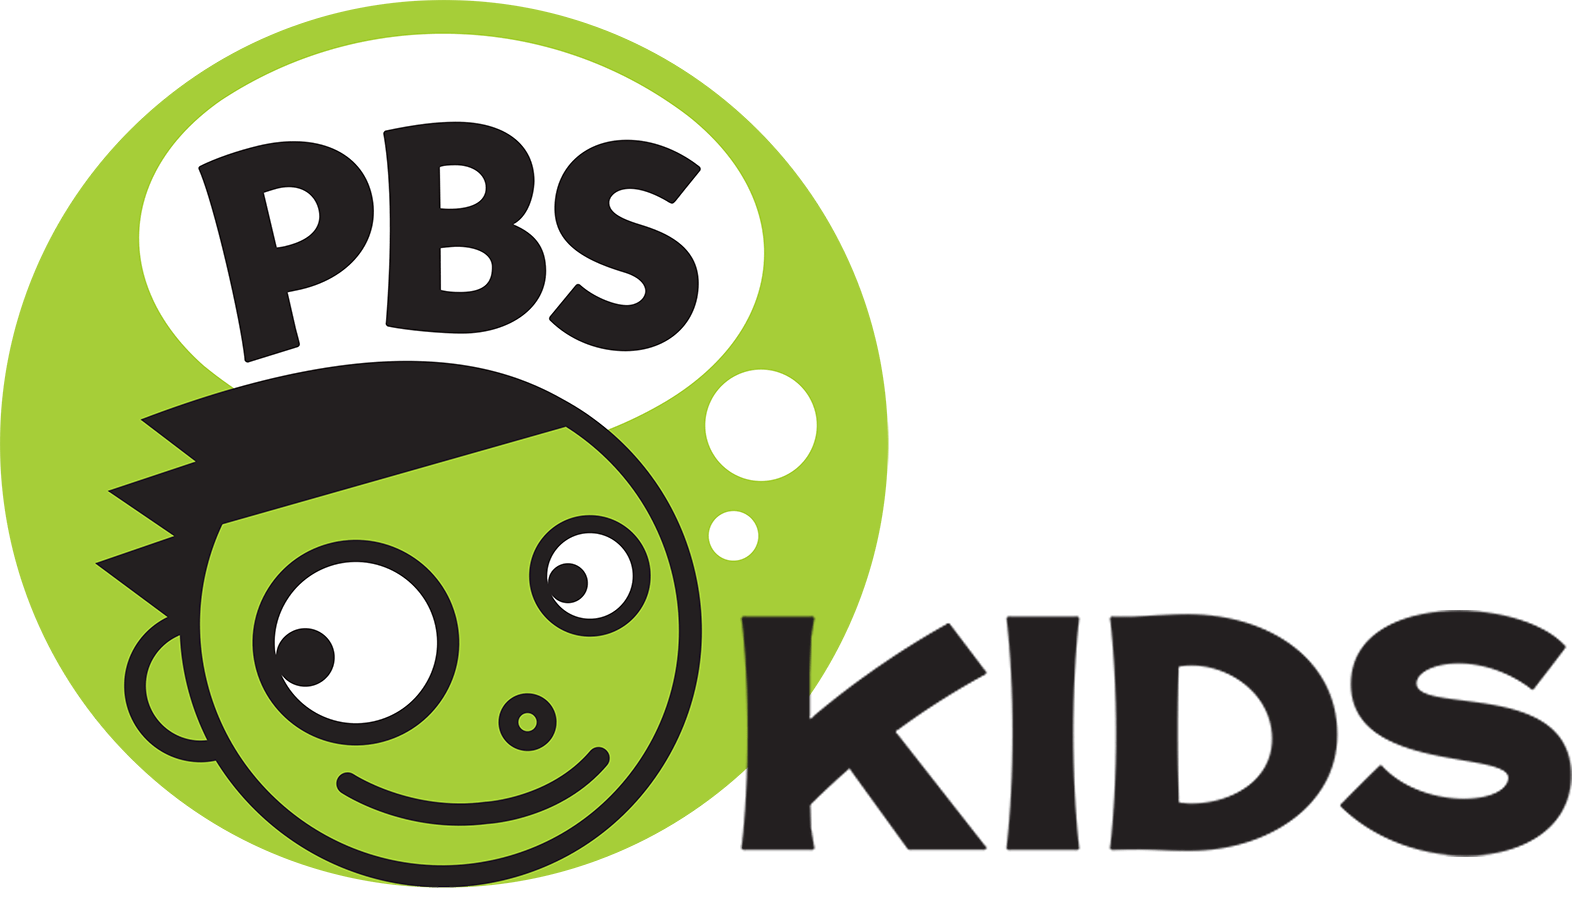 Pbs kids logo png. Baby onesies for sale